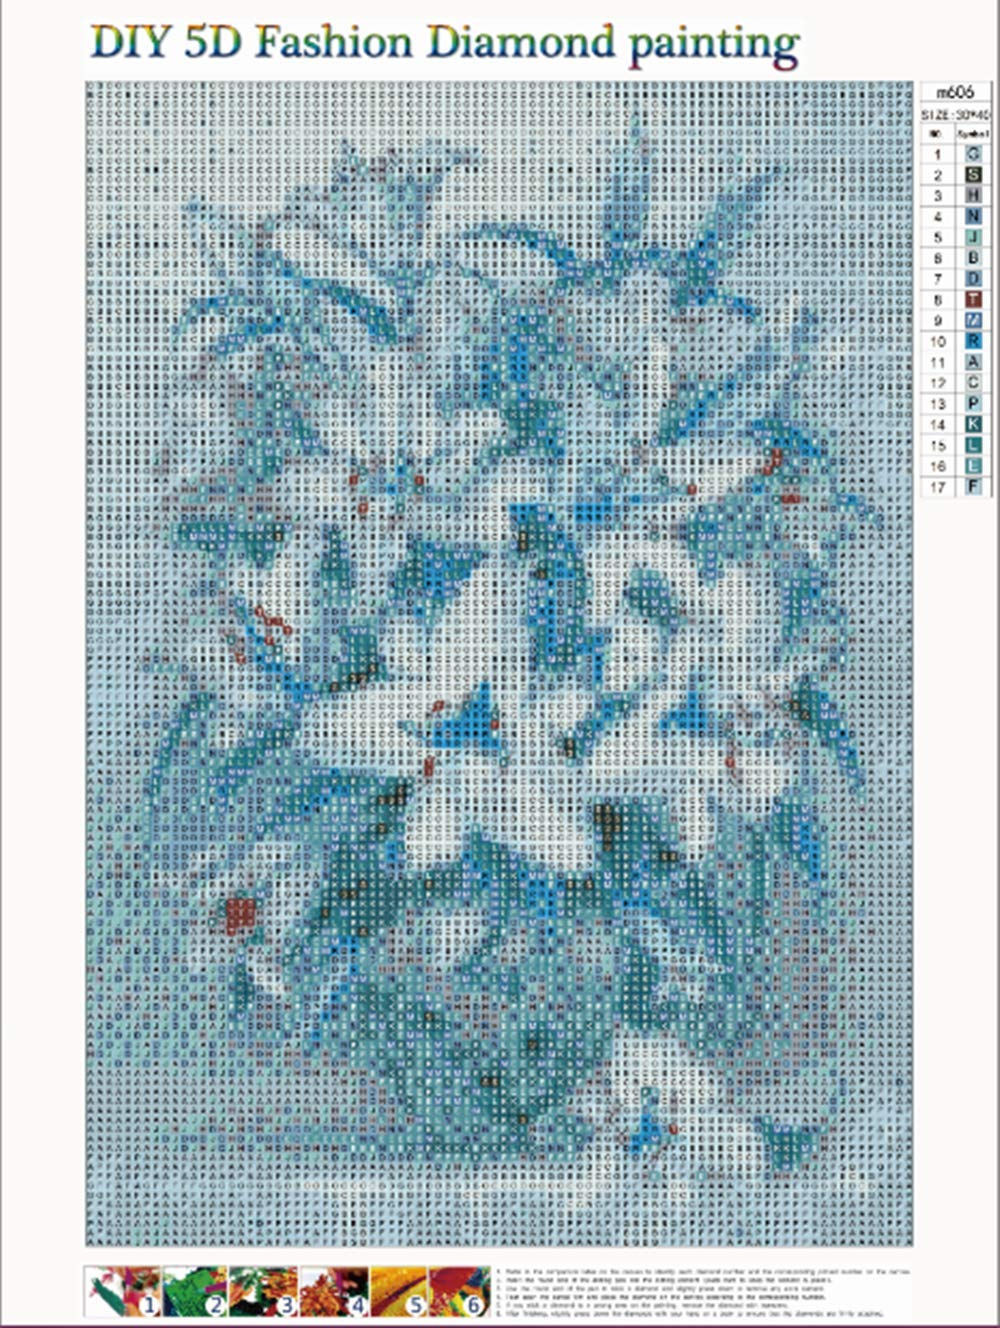 0525b24a8f 5d Diamond Painting kit,Diamond Painting Flowers Lily Rhinestone Embroidery  Cross Stitch Kits Supply Arts Craft Canvas Wall Decor Stickers 12x16 inches